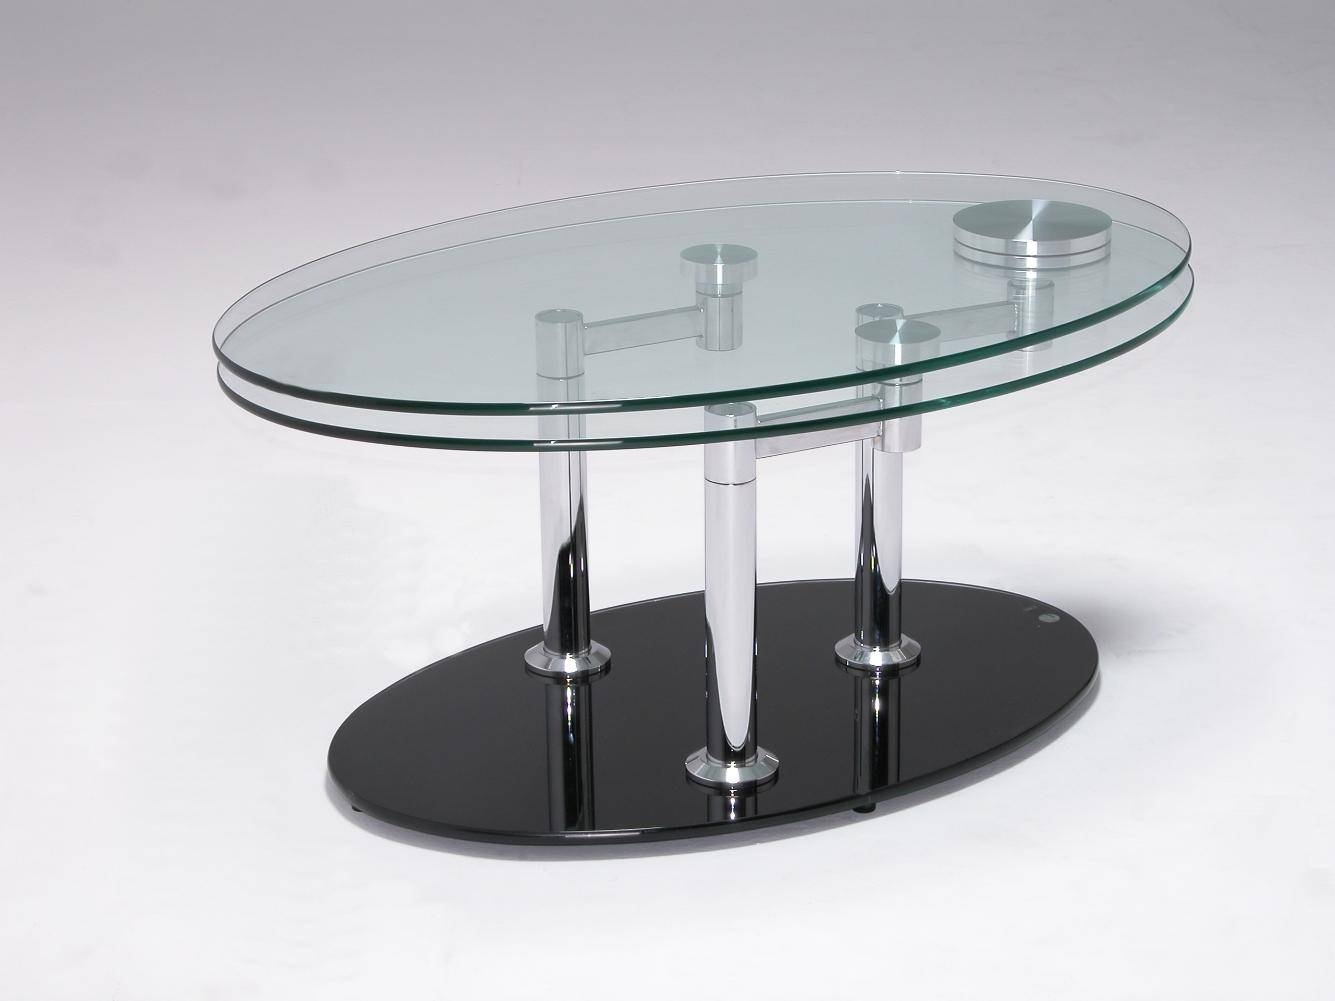 Best Contemporary Coffee Table inside Coffee Tables With Oval Shape (Image 3 of 30)